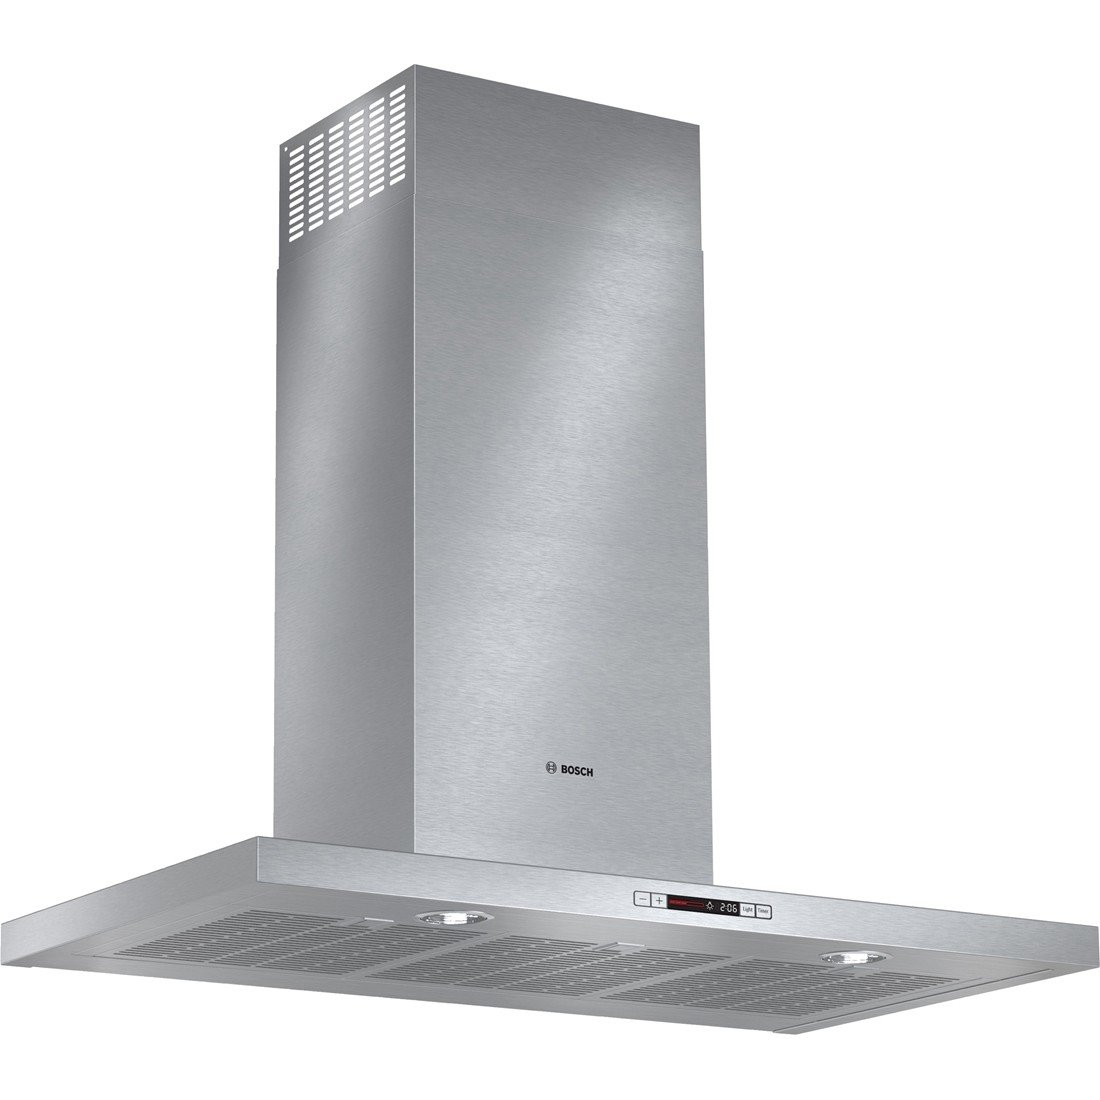 Bosch HCB56651UC500 36' Stainless Steel Chimney Style Wall Mount Range Hood